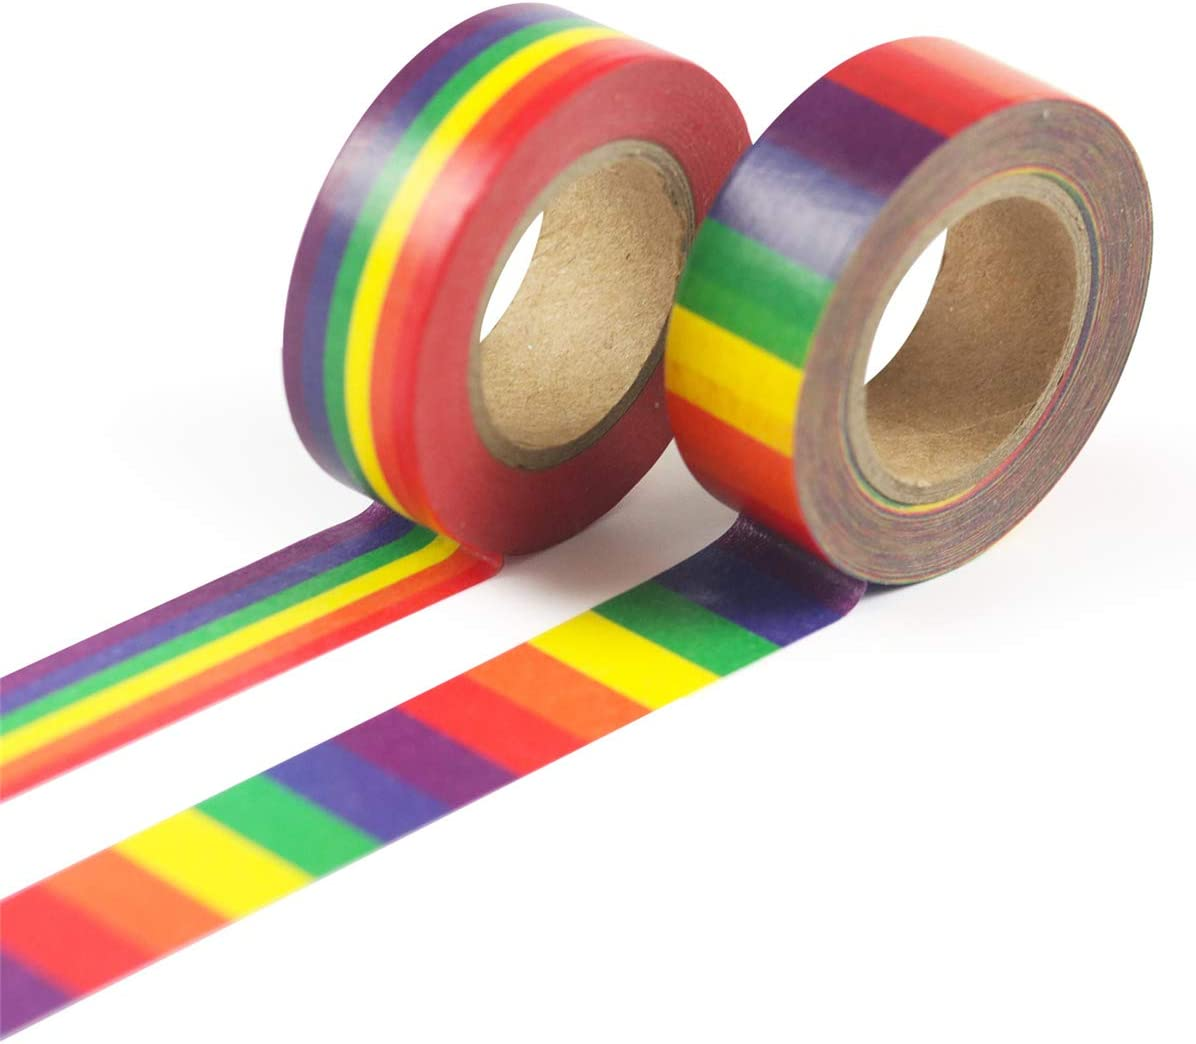 Y-QUARTER 1PC Colored Rainbow Washi Tape School Supplies Stationery Tape for Office Stationery,15mm